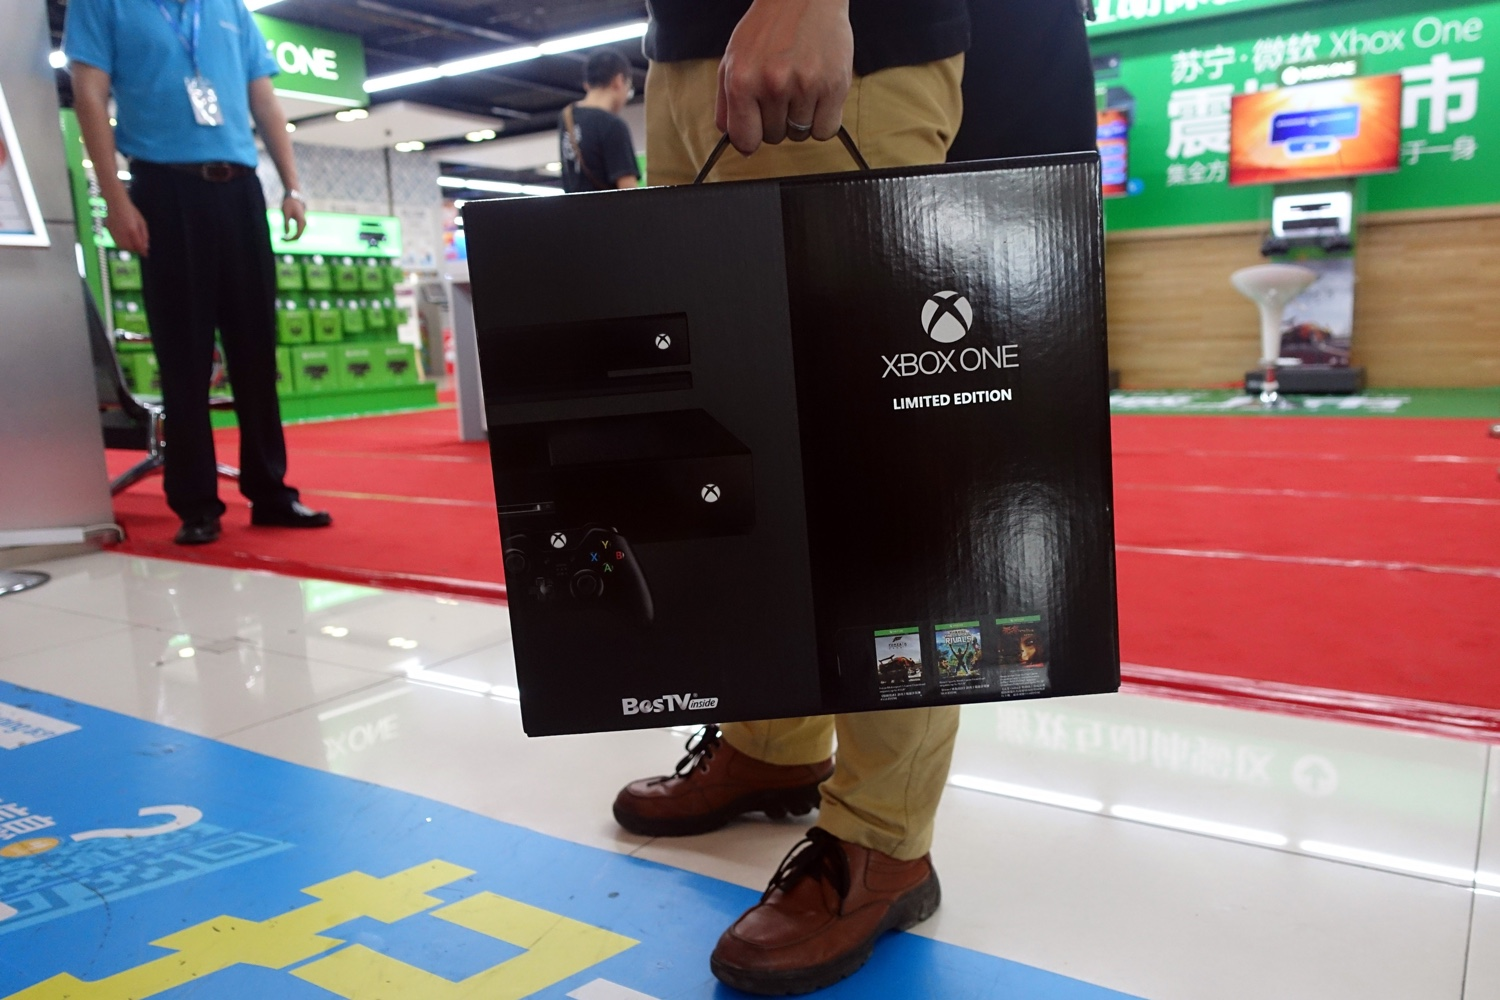 A customer holds Microsoft's Xbox One game console limited edition in an electronic shop in Shanghai on September 29, 2014.